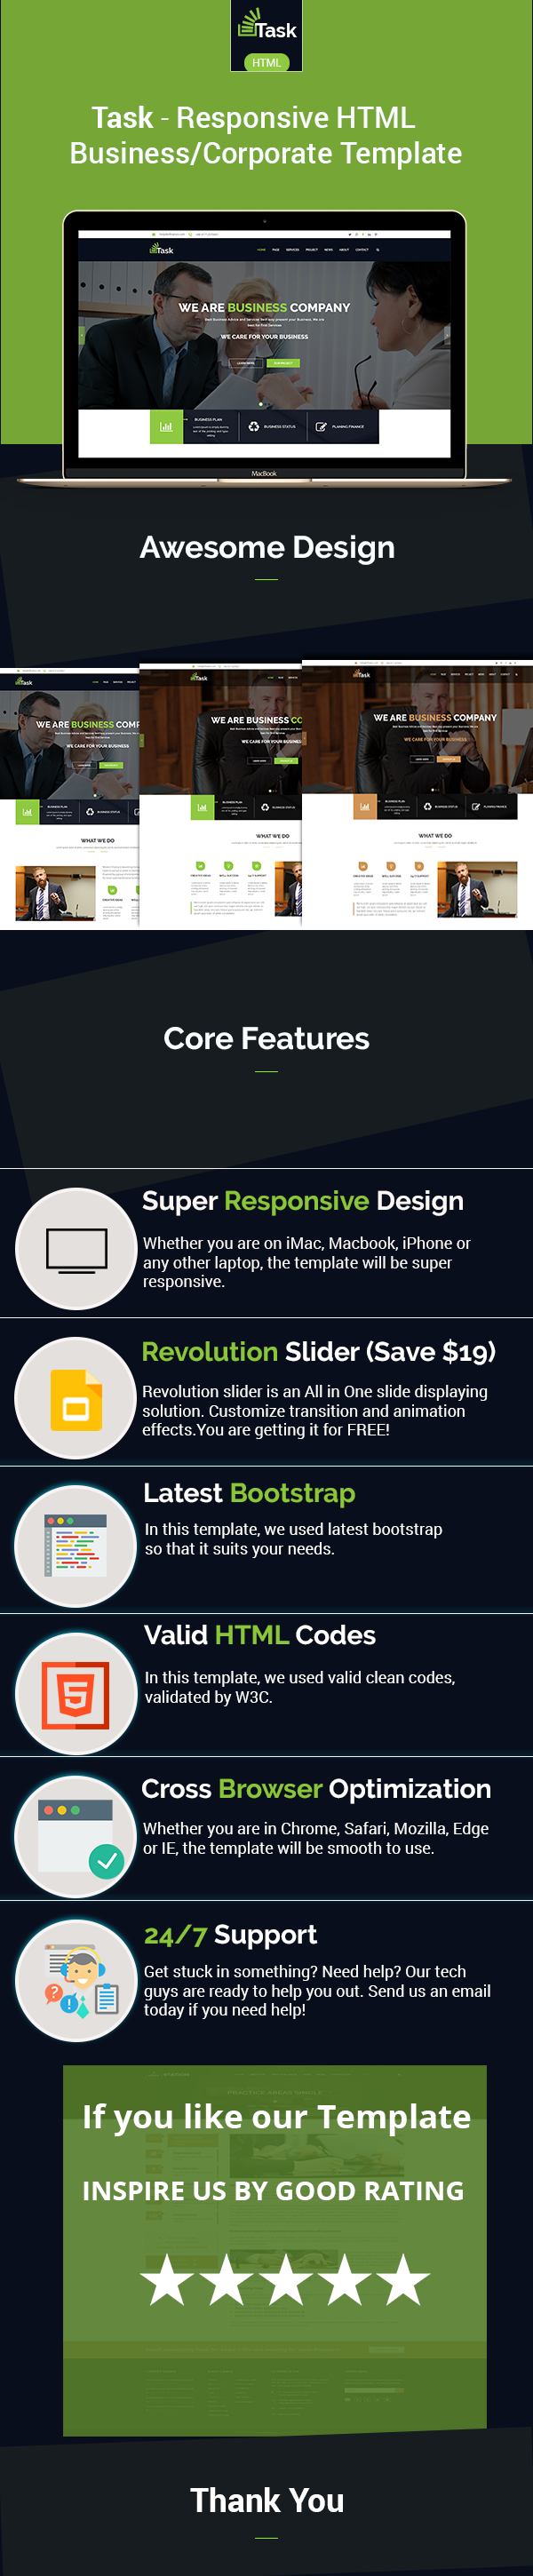 Task - Responsive Business/Corporate HTML Template